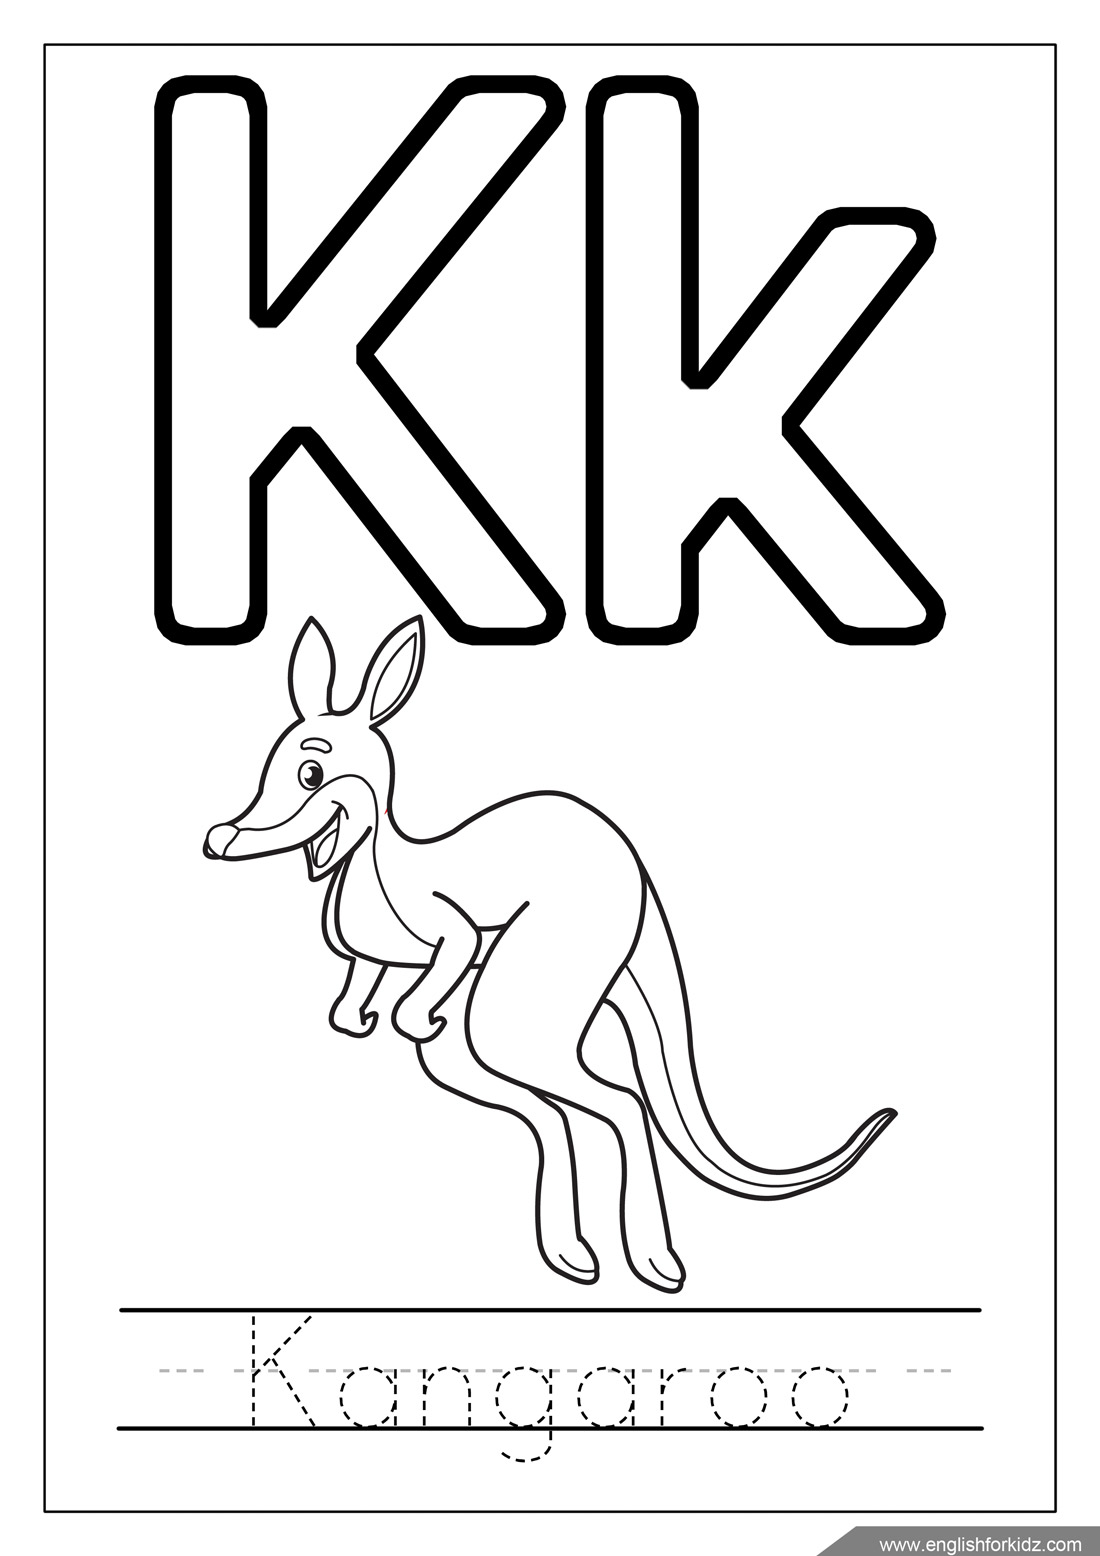 letter k coloring page letter k drawing at getdrawings free download coloring letter k page